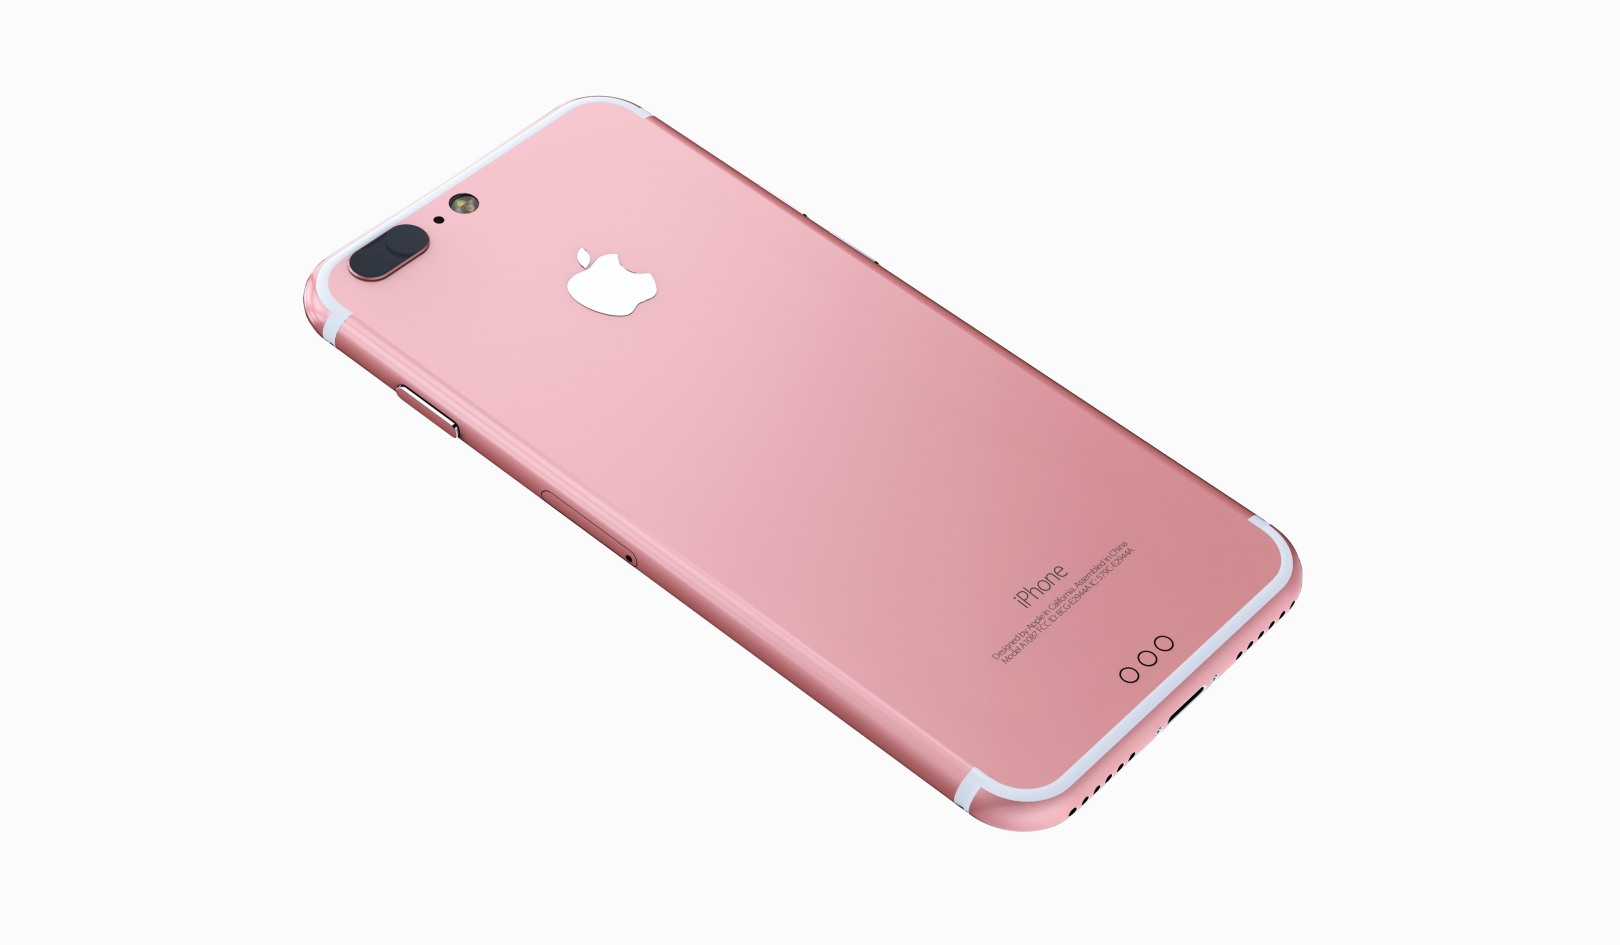 iphone 7 rose gold back panel leaked report claims same price for base model superphen 39 s tech. Black Bedroom Furniture Sets. Home Design Ideas